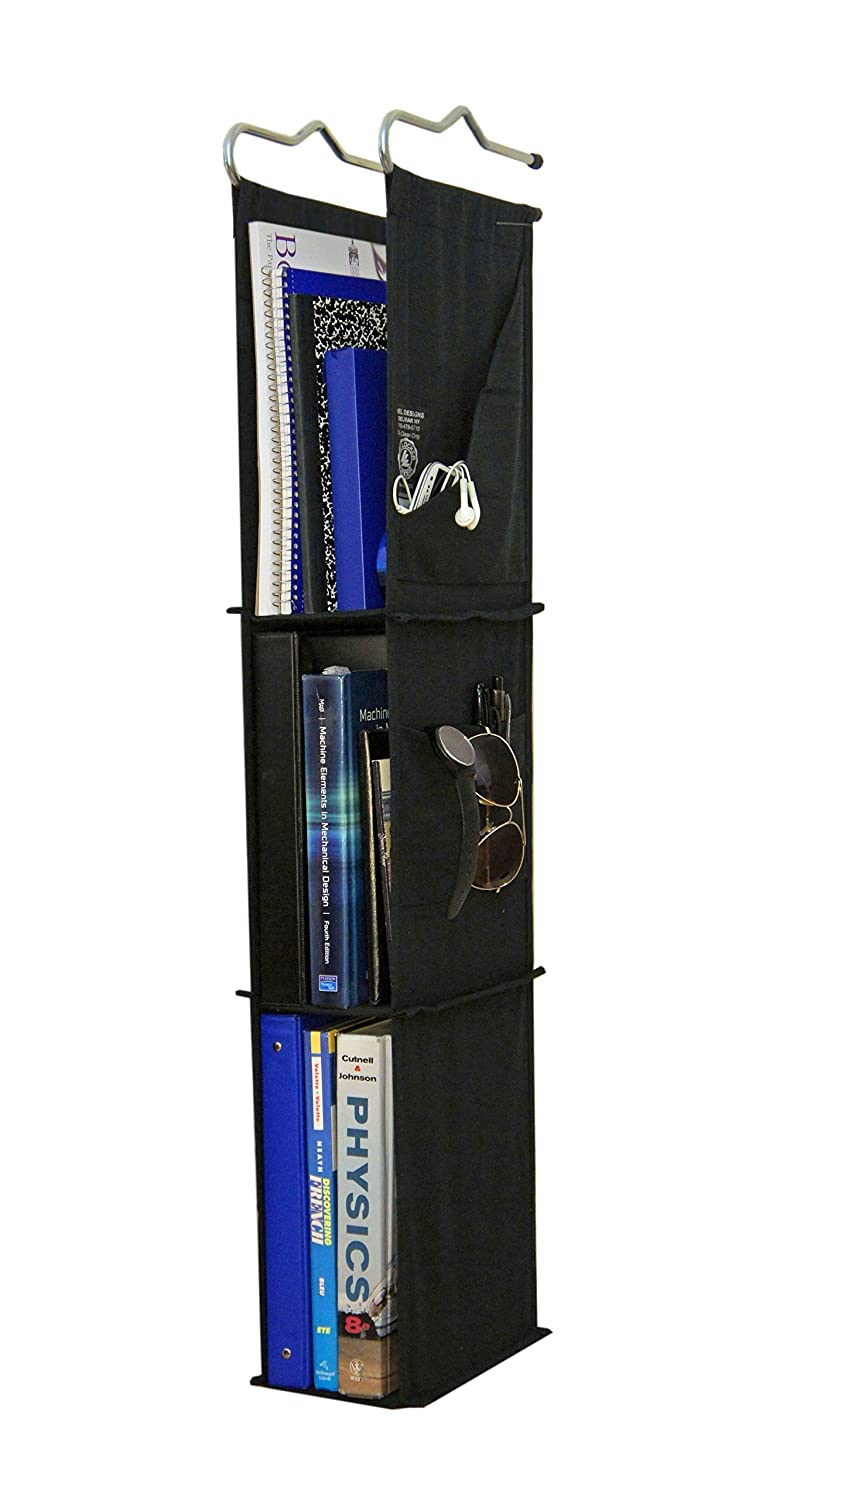 Locker Ladder Locker Organizer Hanging Shelves Del Desings 12259